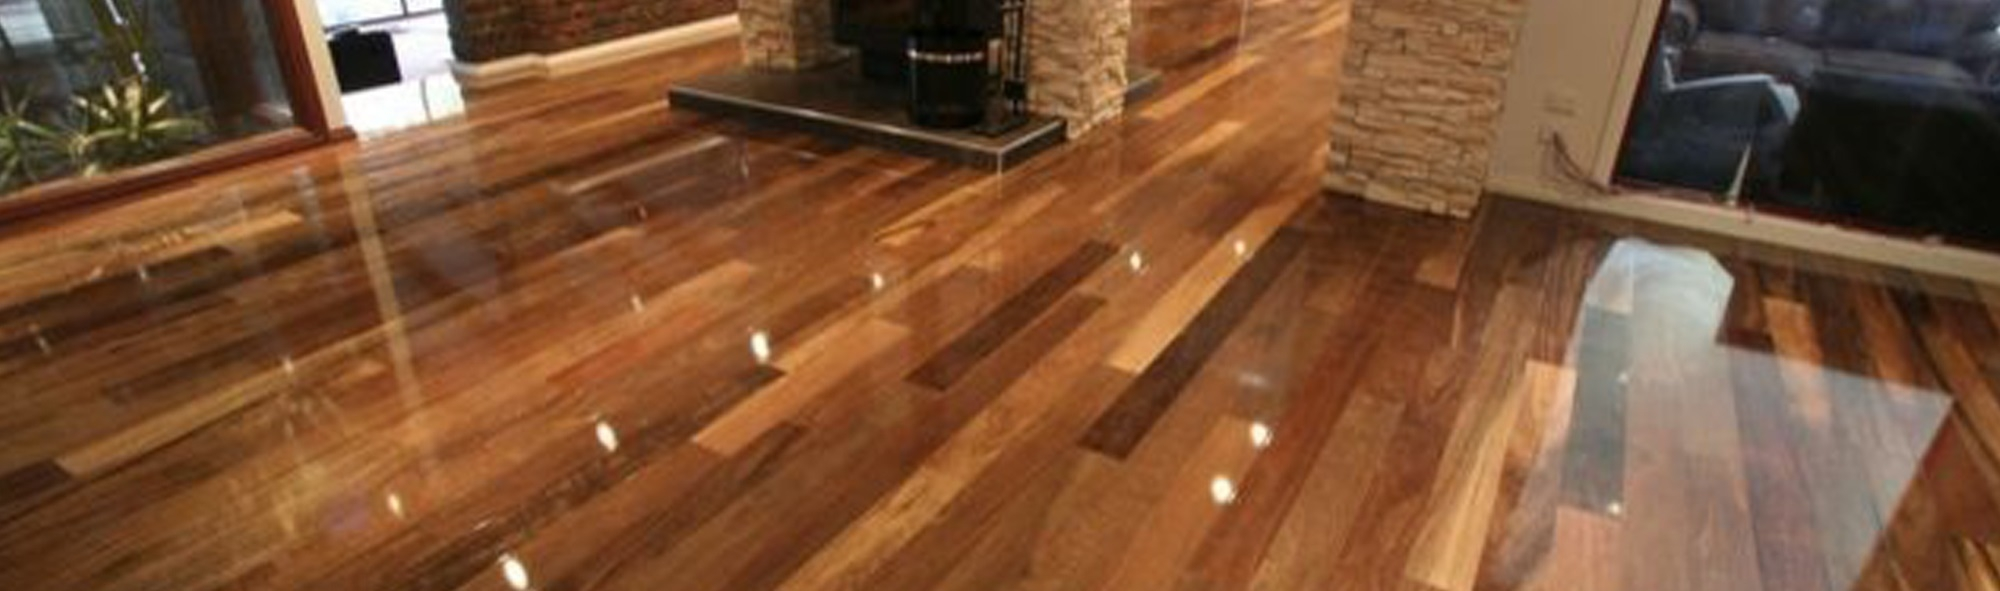 Epoxy Coating For Wooden Floors Wood